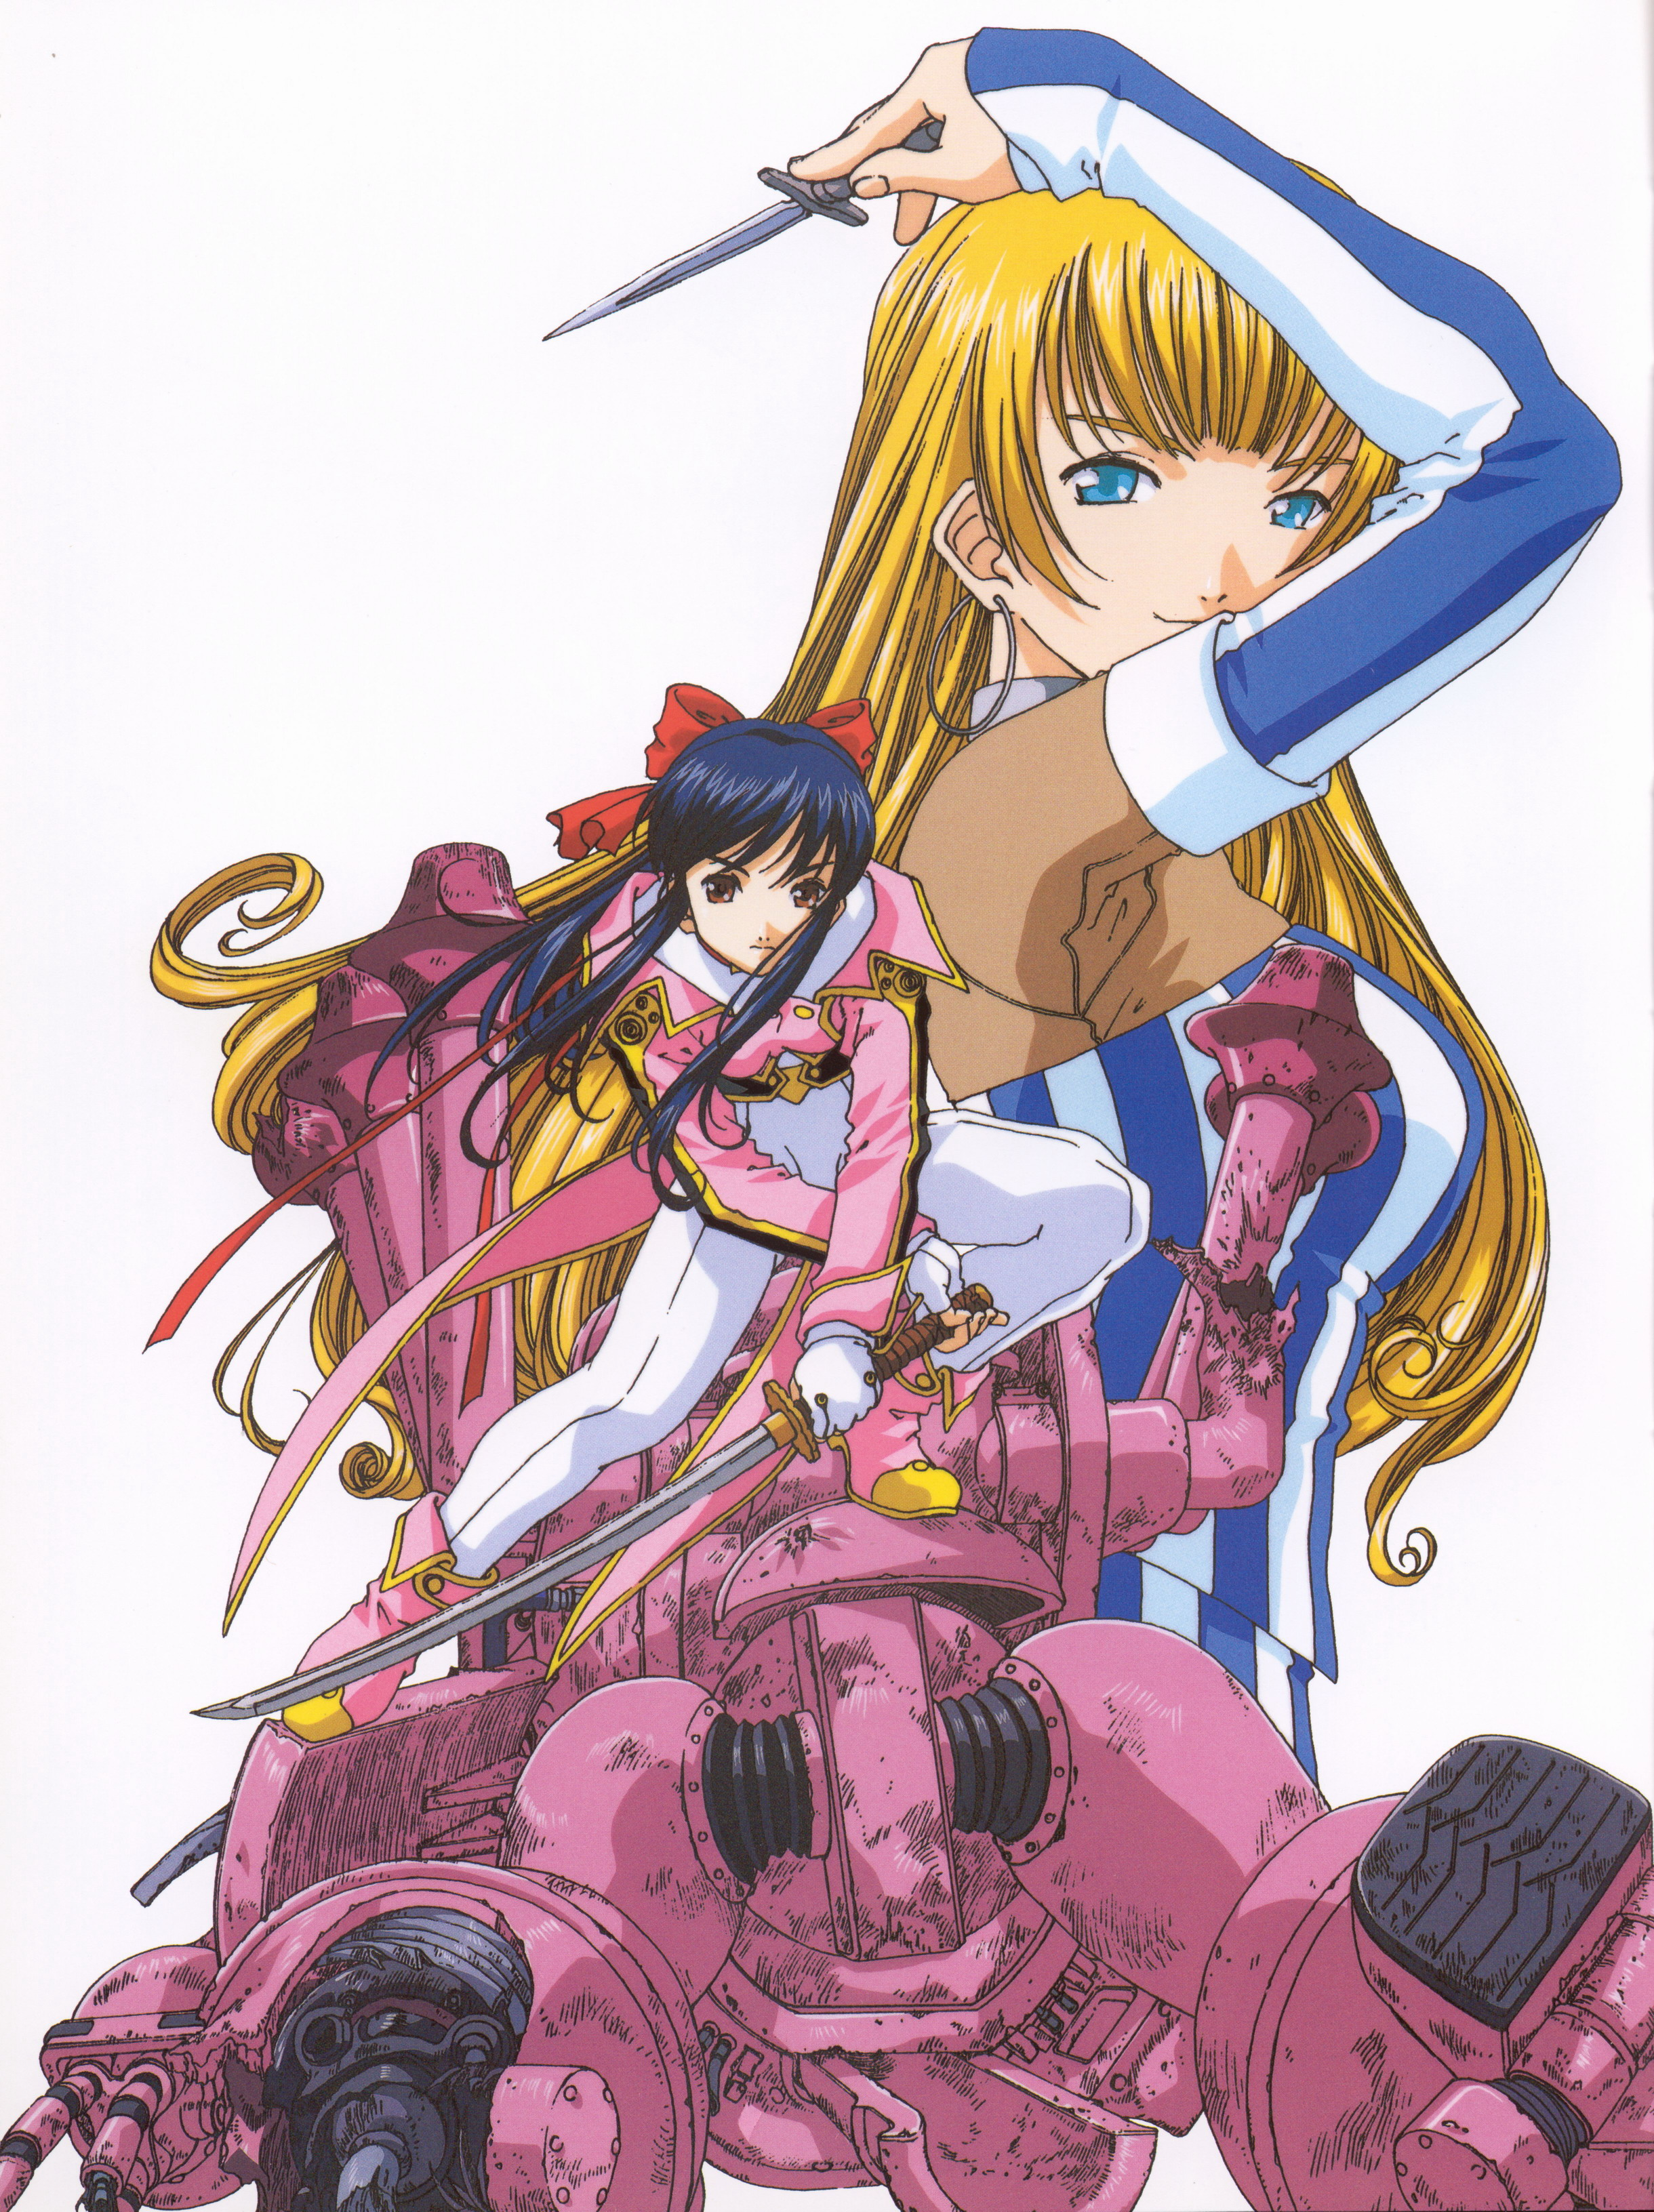 Sakura Wars Illustrations The Origin + Tribute - Zerochan